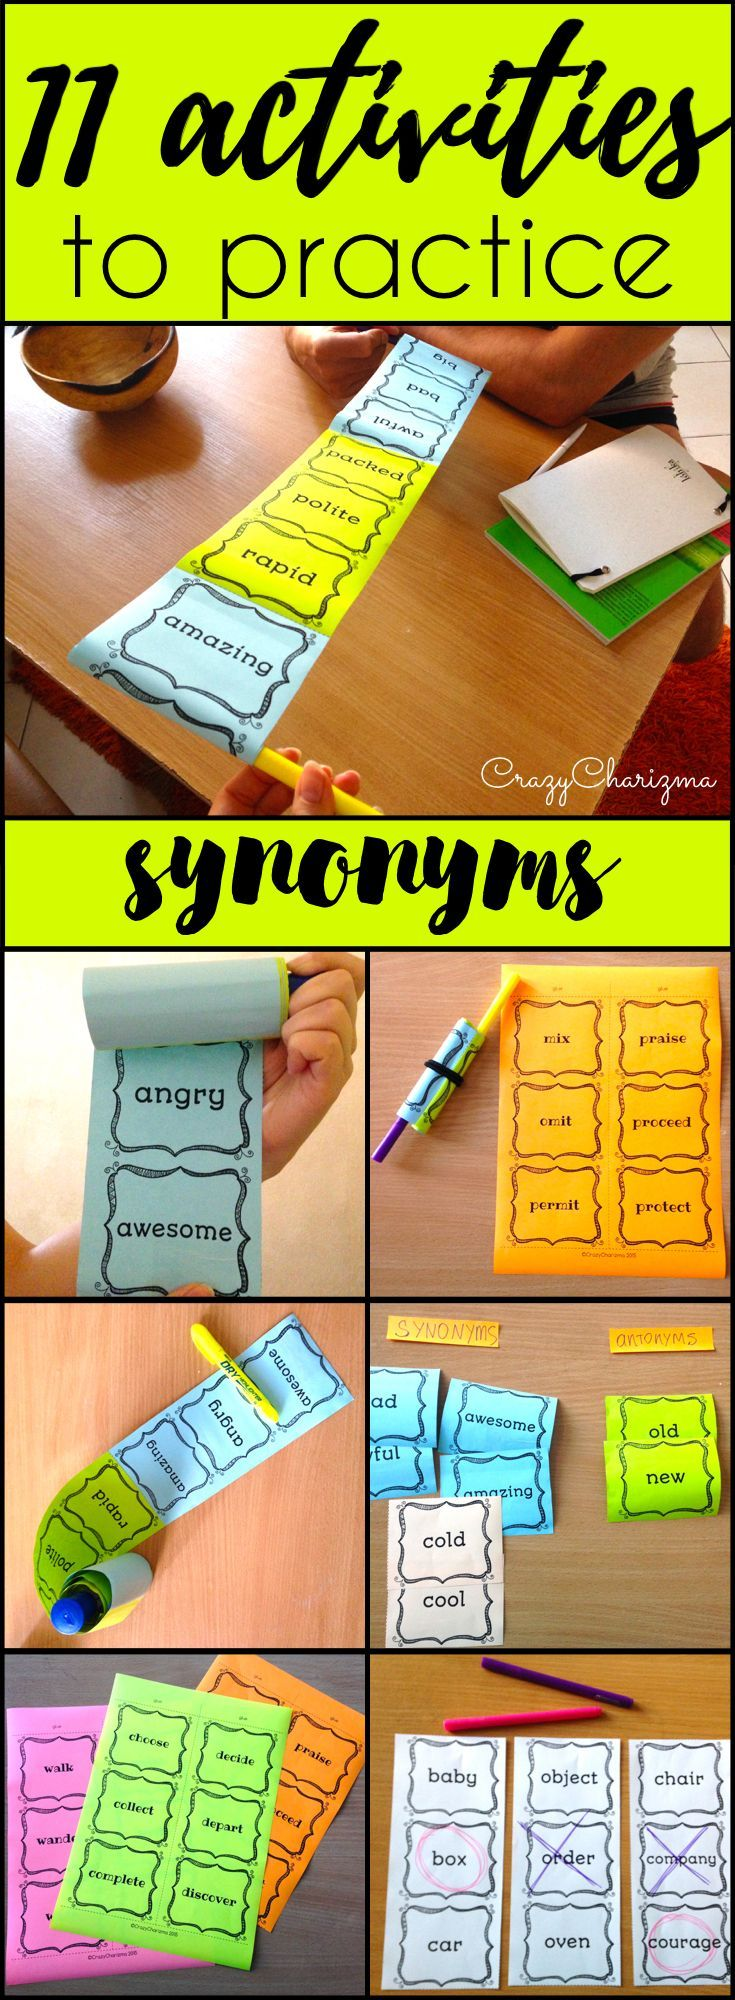 Find inside engaging and interactive synonyms activities -  11 variants how to use cards with 360 words!!! Your kids will definitely love synonyms after these fun activities! (L.4.5C, L.5.5C) $ | CrazyCharizma at https://www.teacherspayteachers.com/Store/Crazycharizma